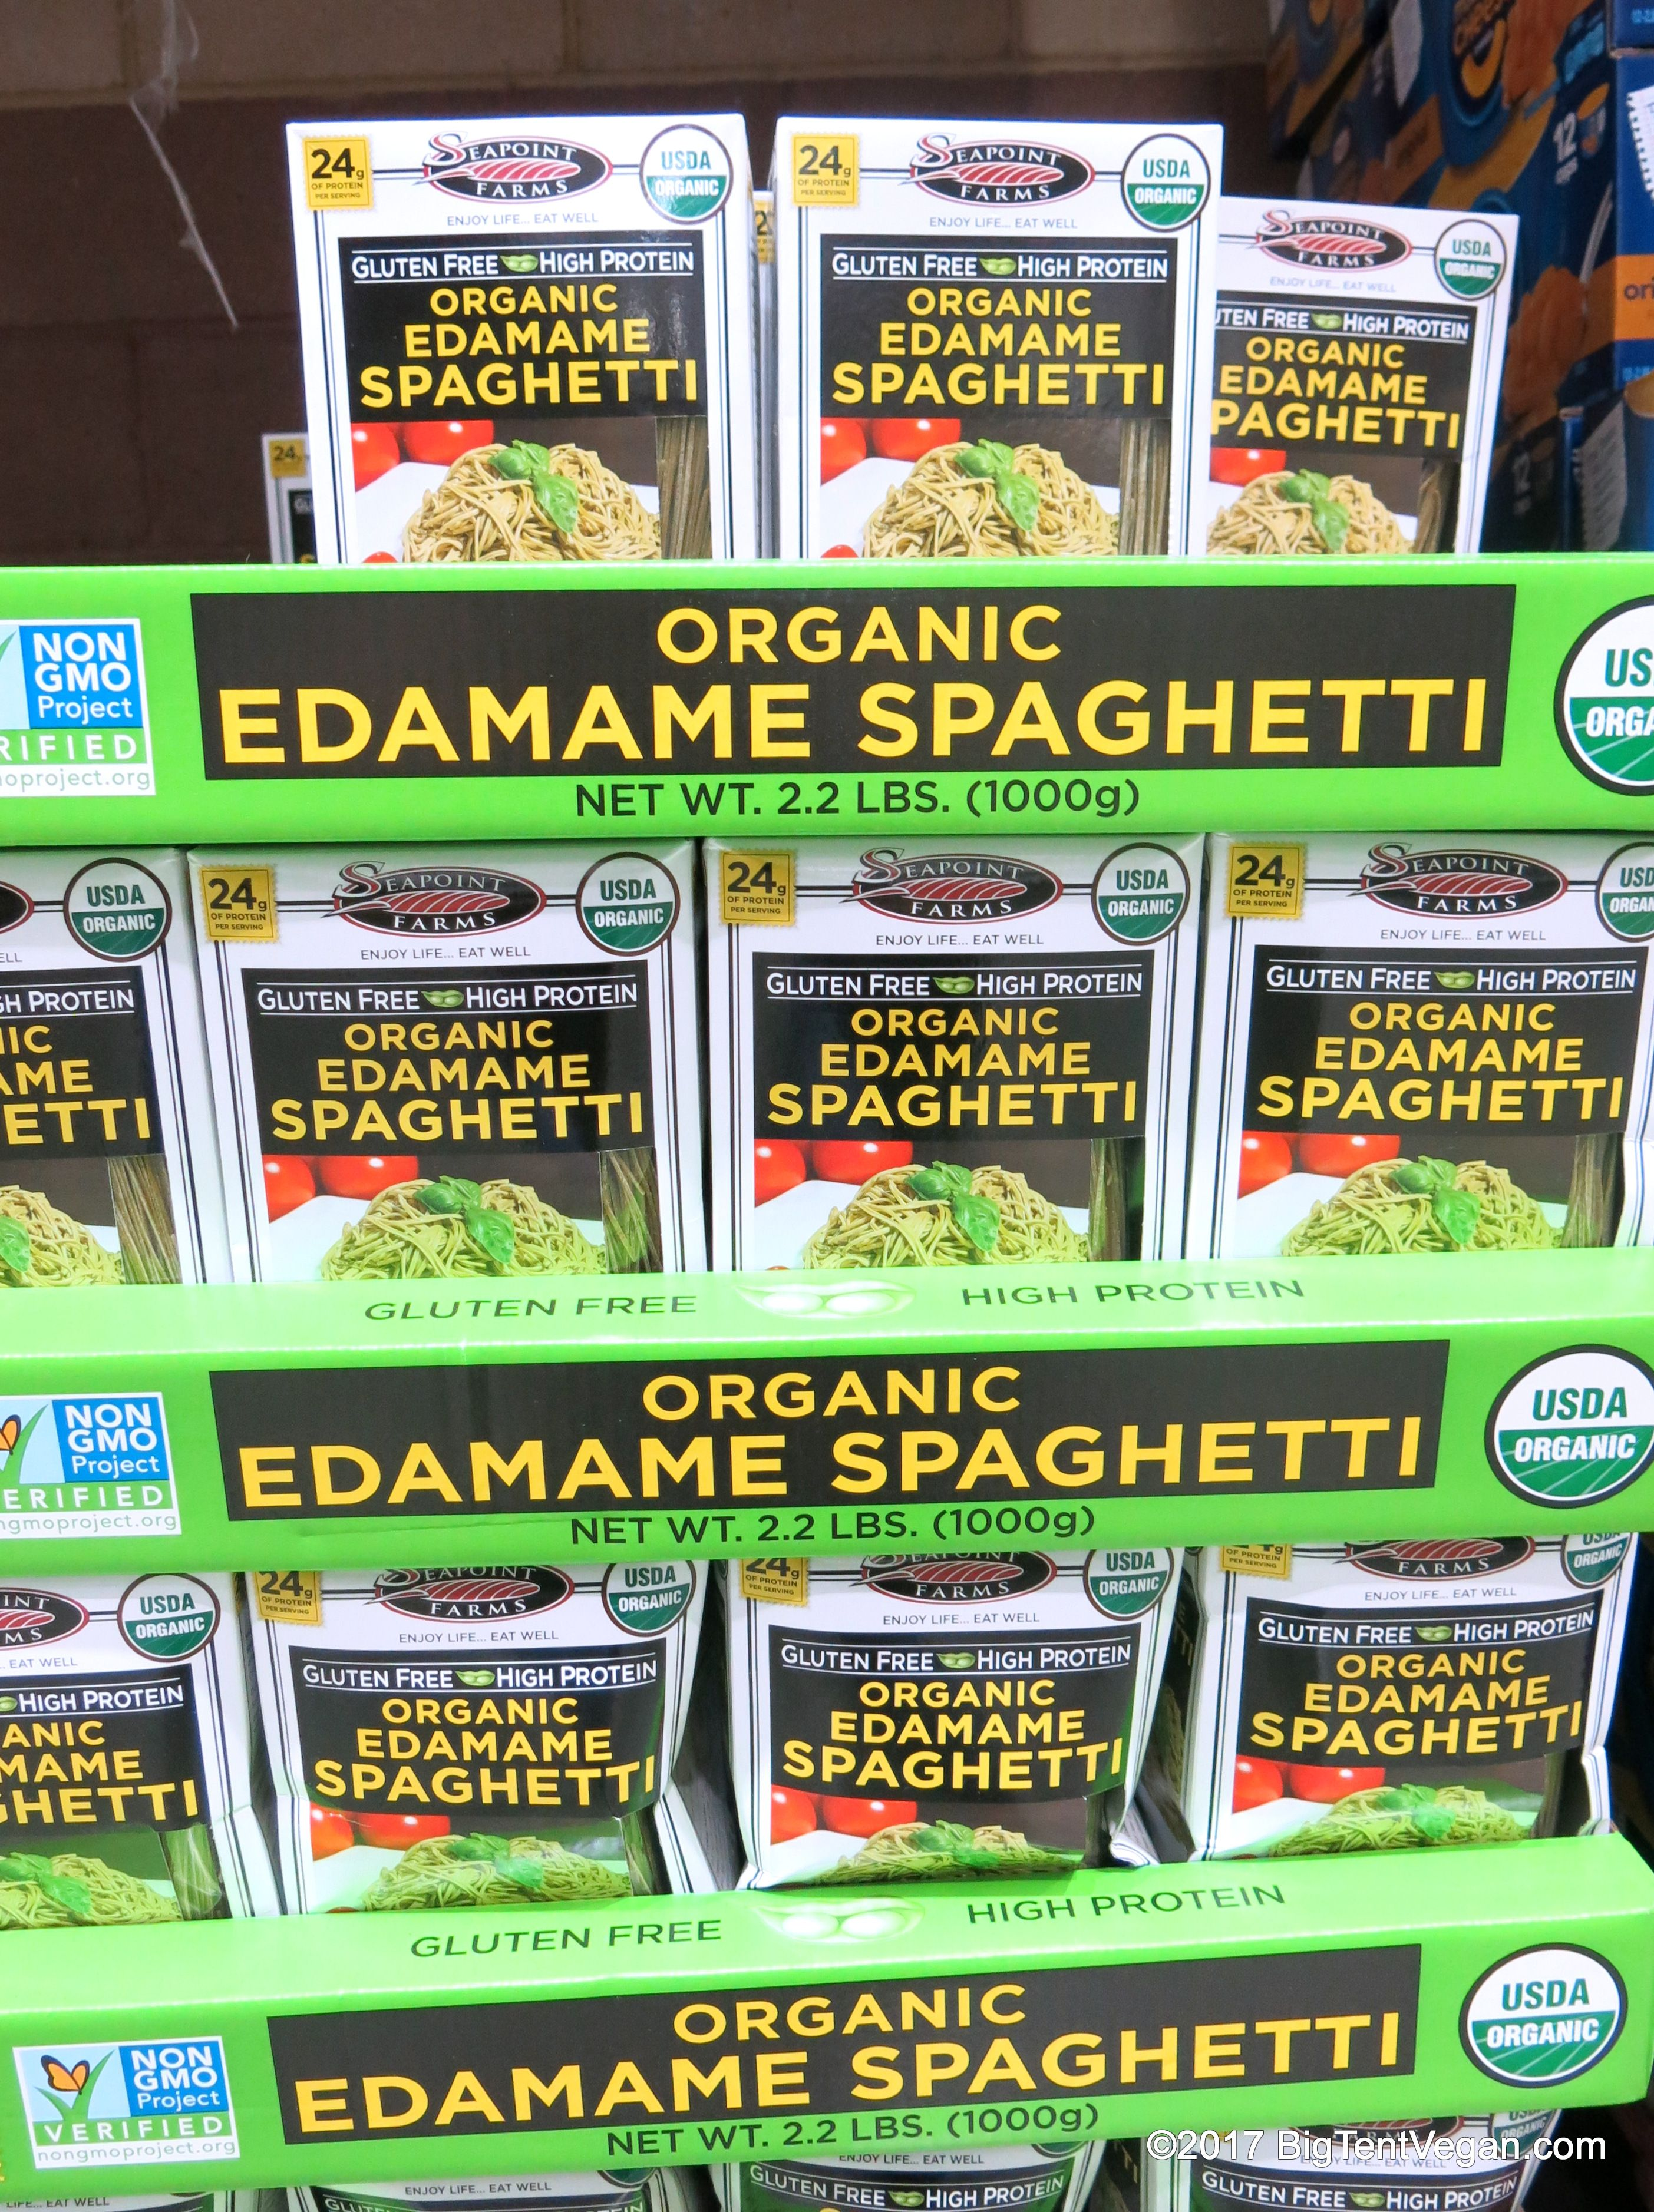 Organic Edamame Spaghetti By Seapoint Farms Costco With Images